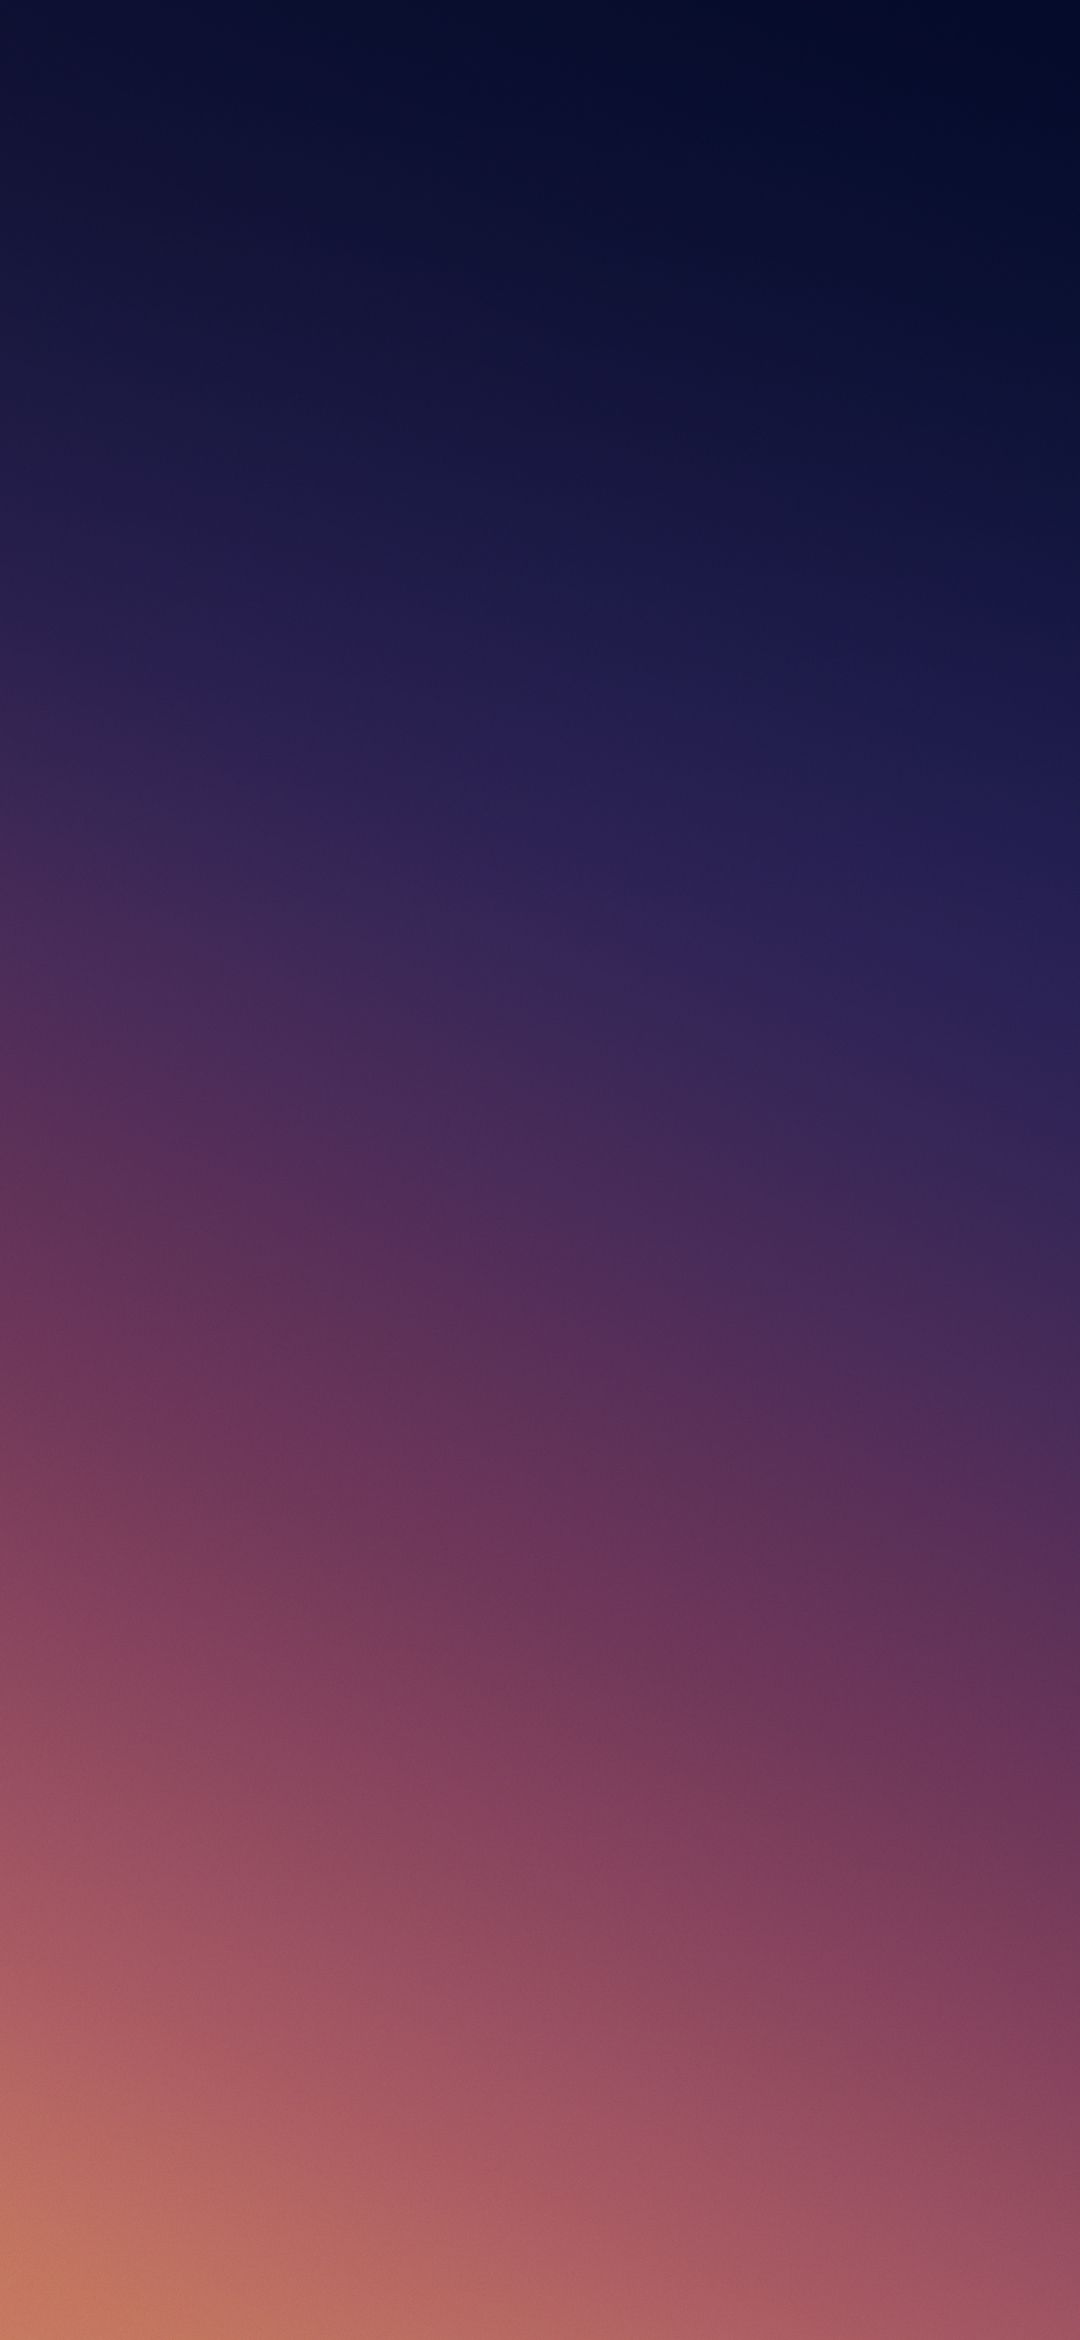 Official Redmi Note 7 Wallpaper - Stock